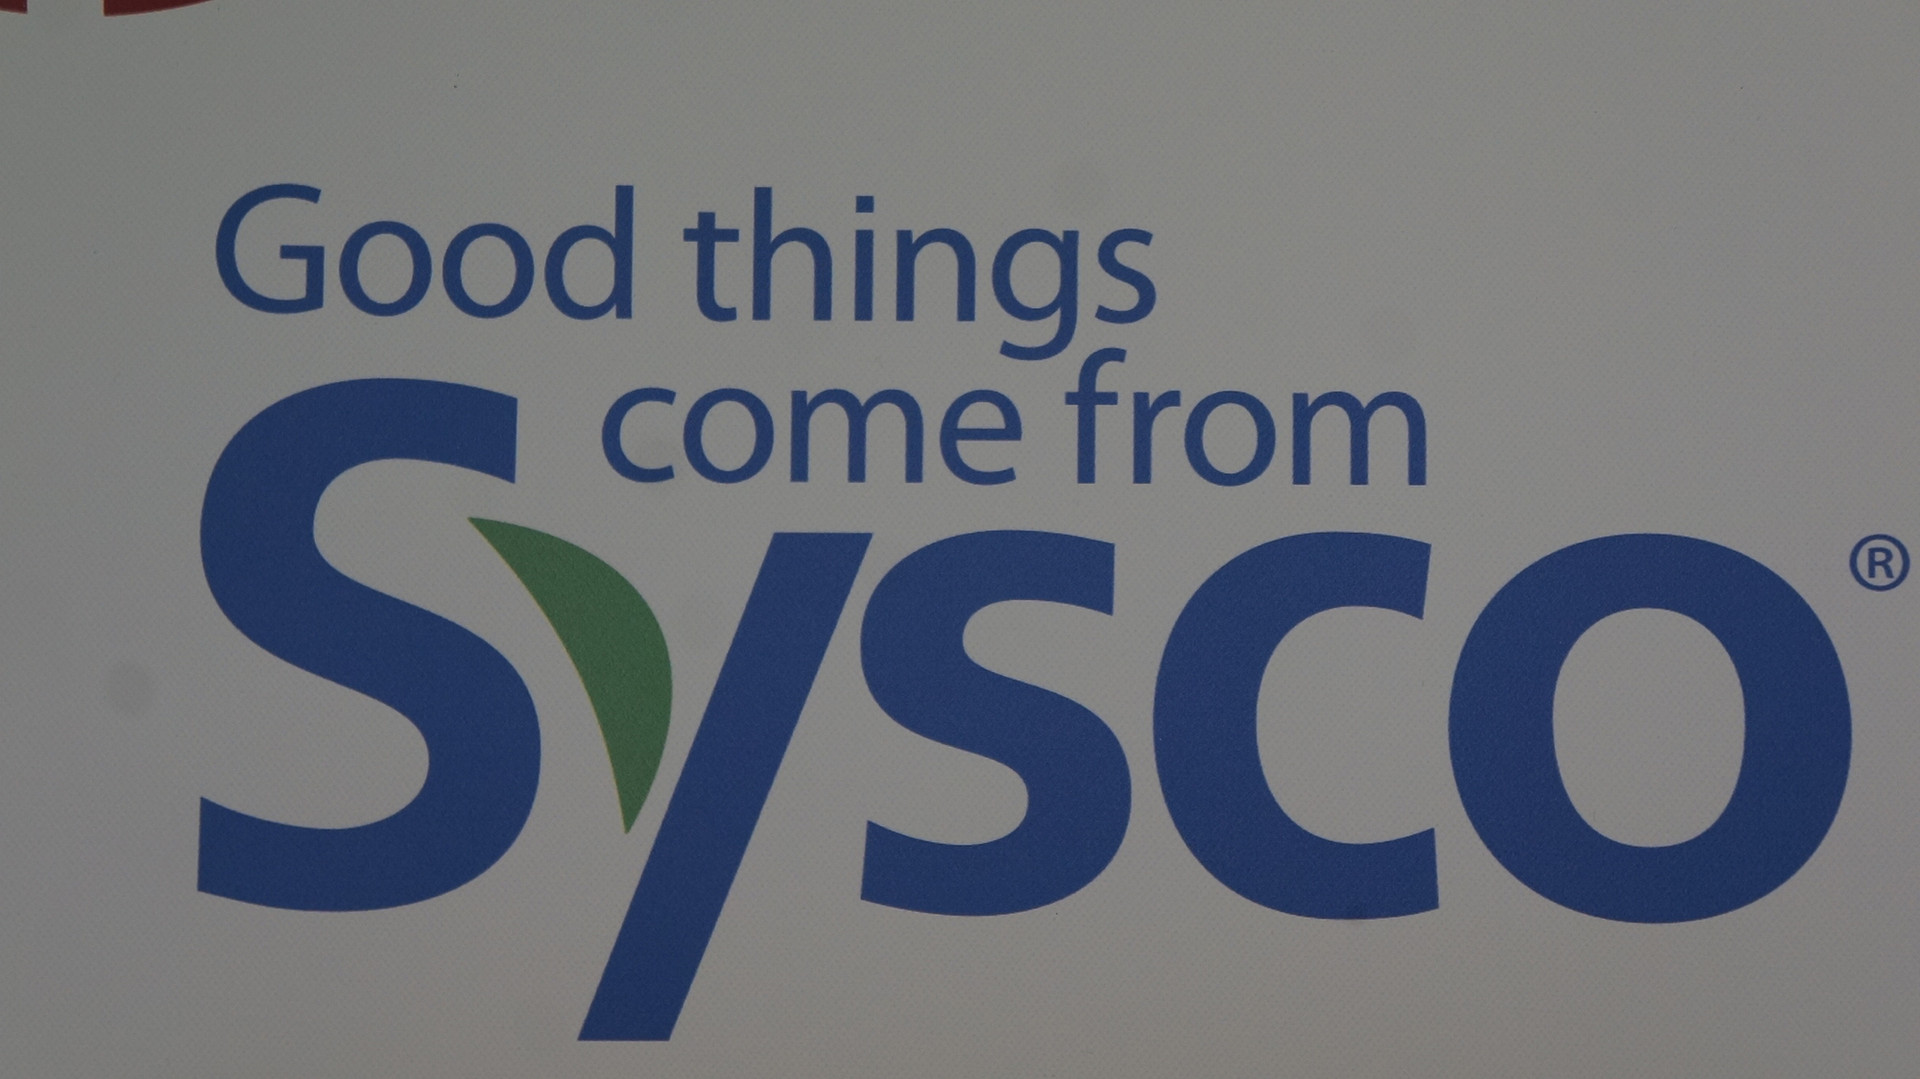 Thank you, Sysco, for being a great host!